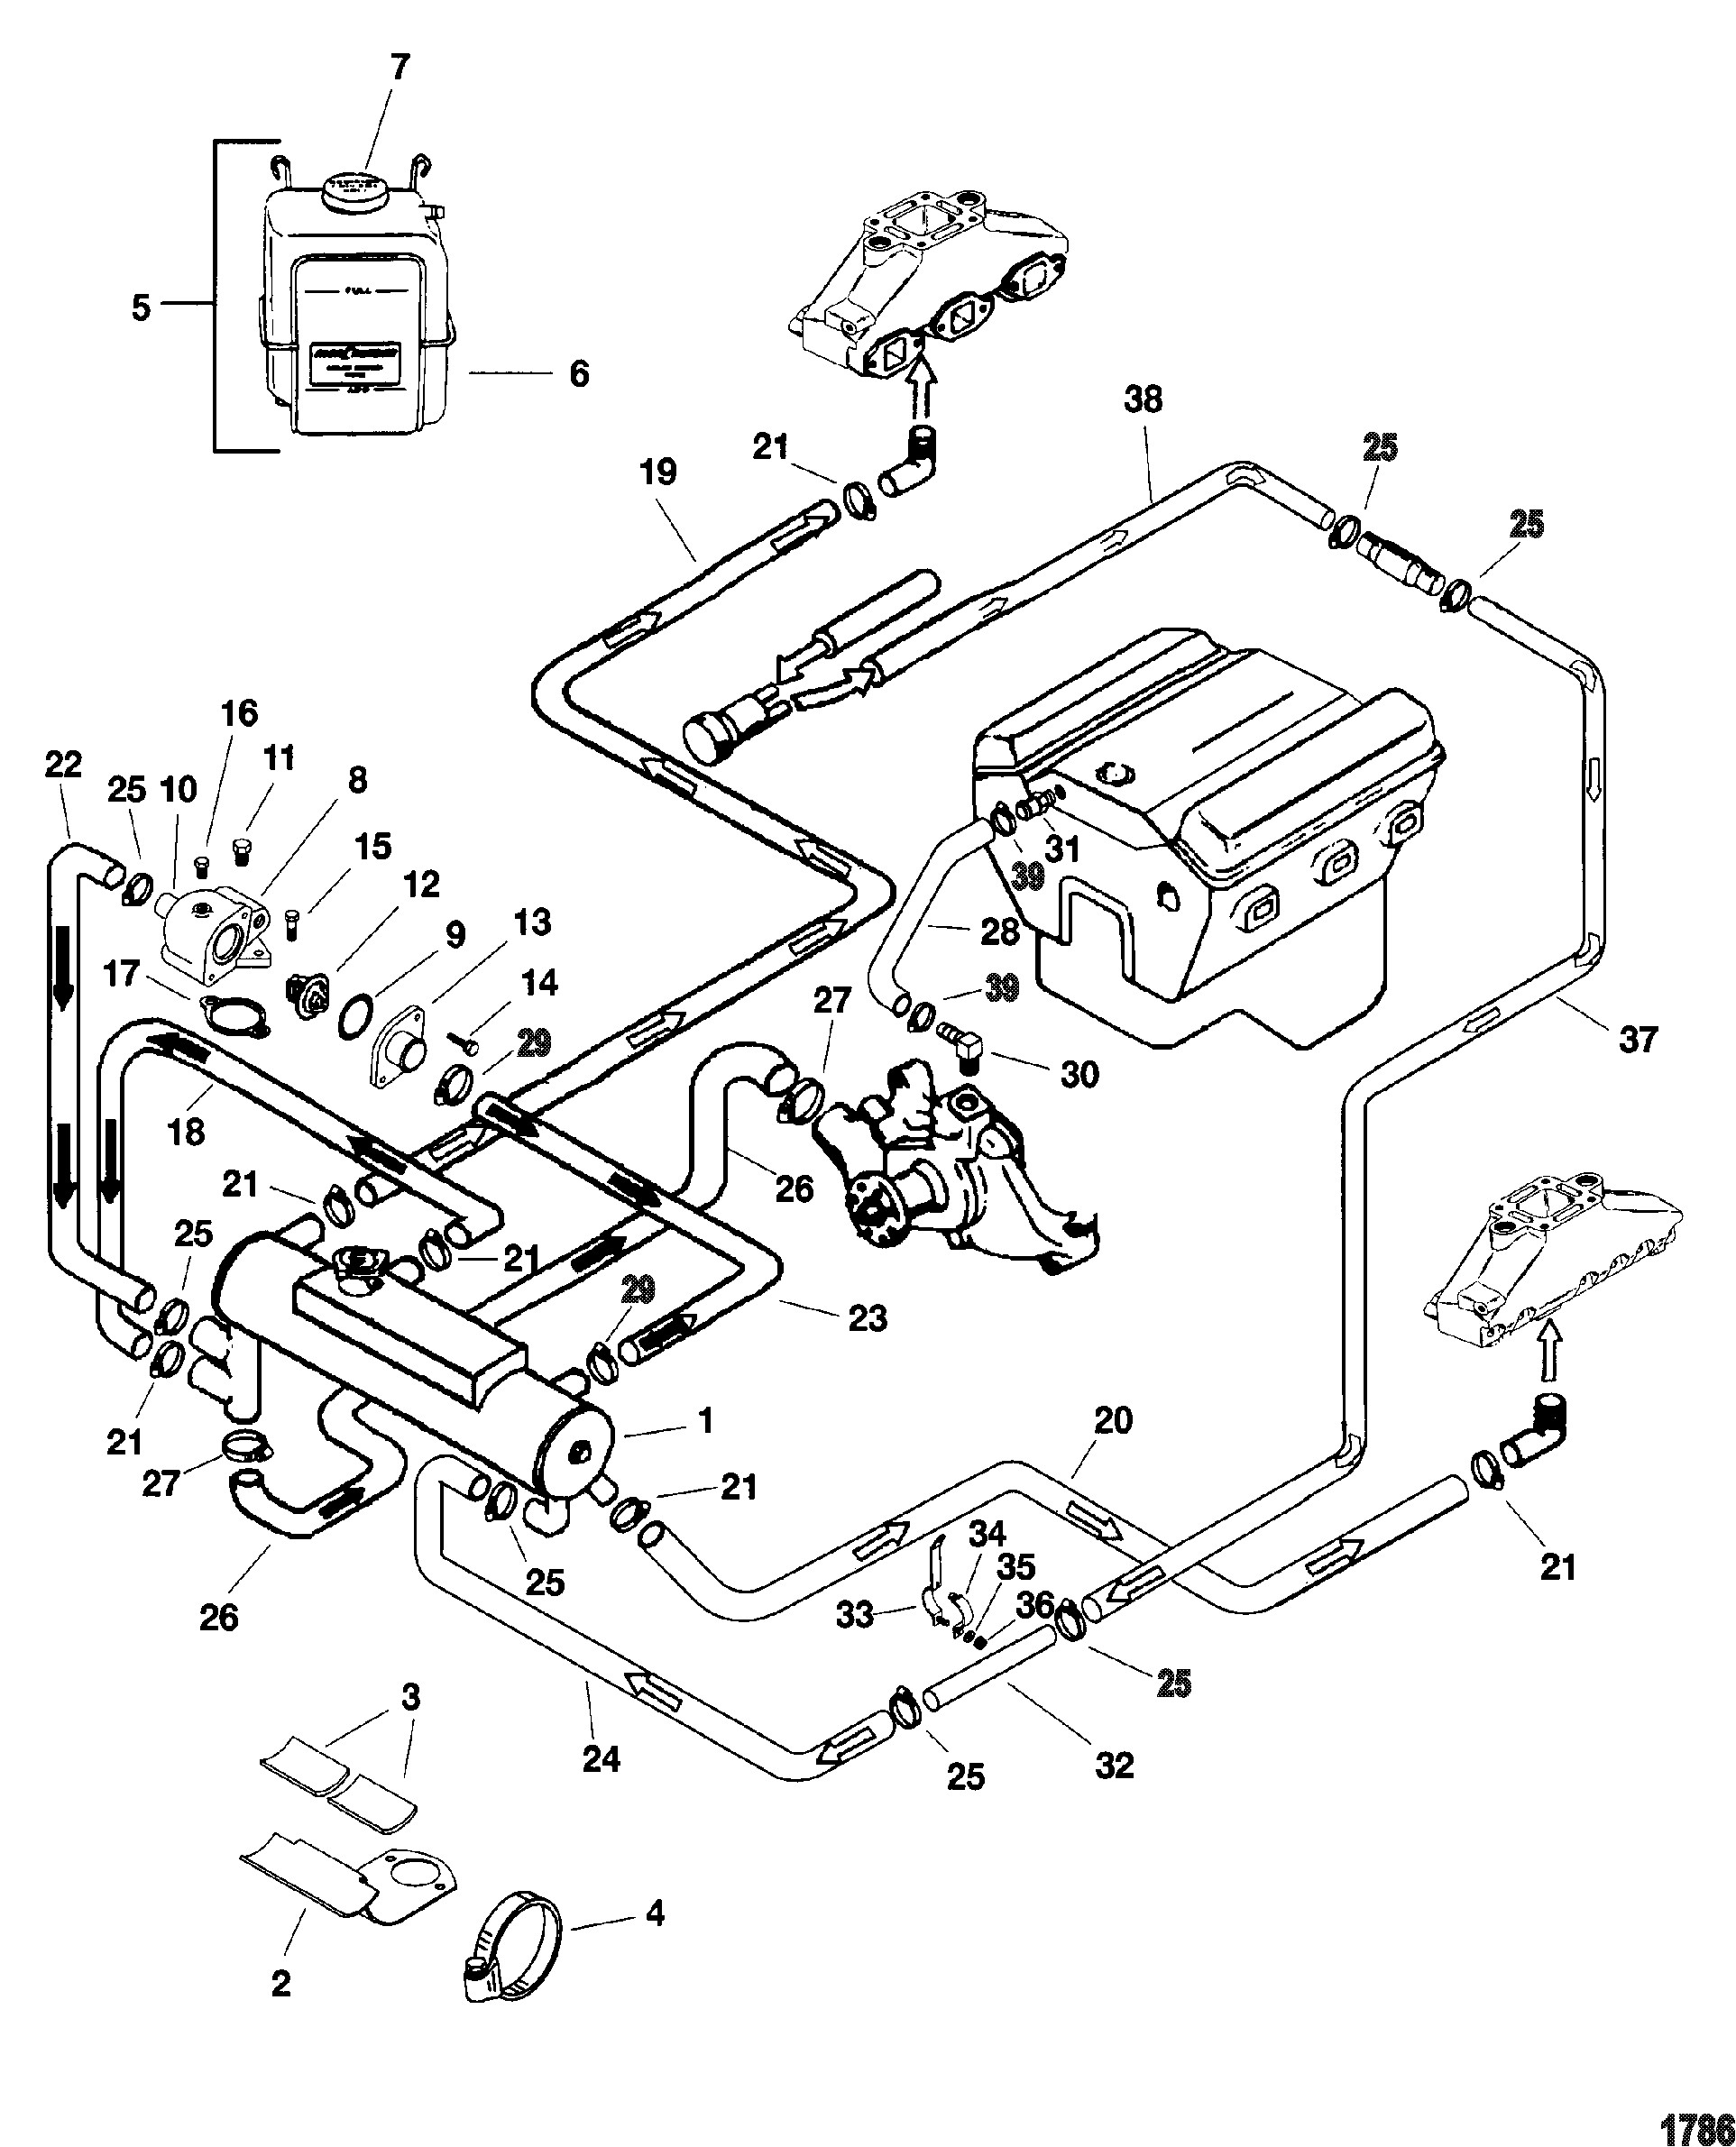 hight resolution of chrysler 3 8 engine coolant system diagram wiring diagrams scematic fuel system diagram moreover 1999 chrysler 300m fuel line diagram